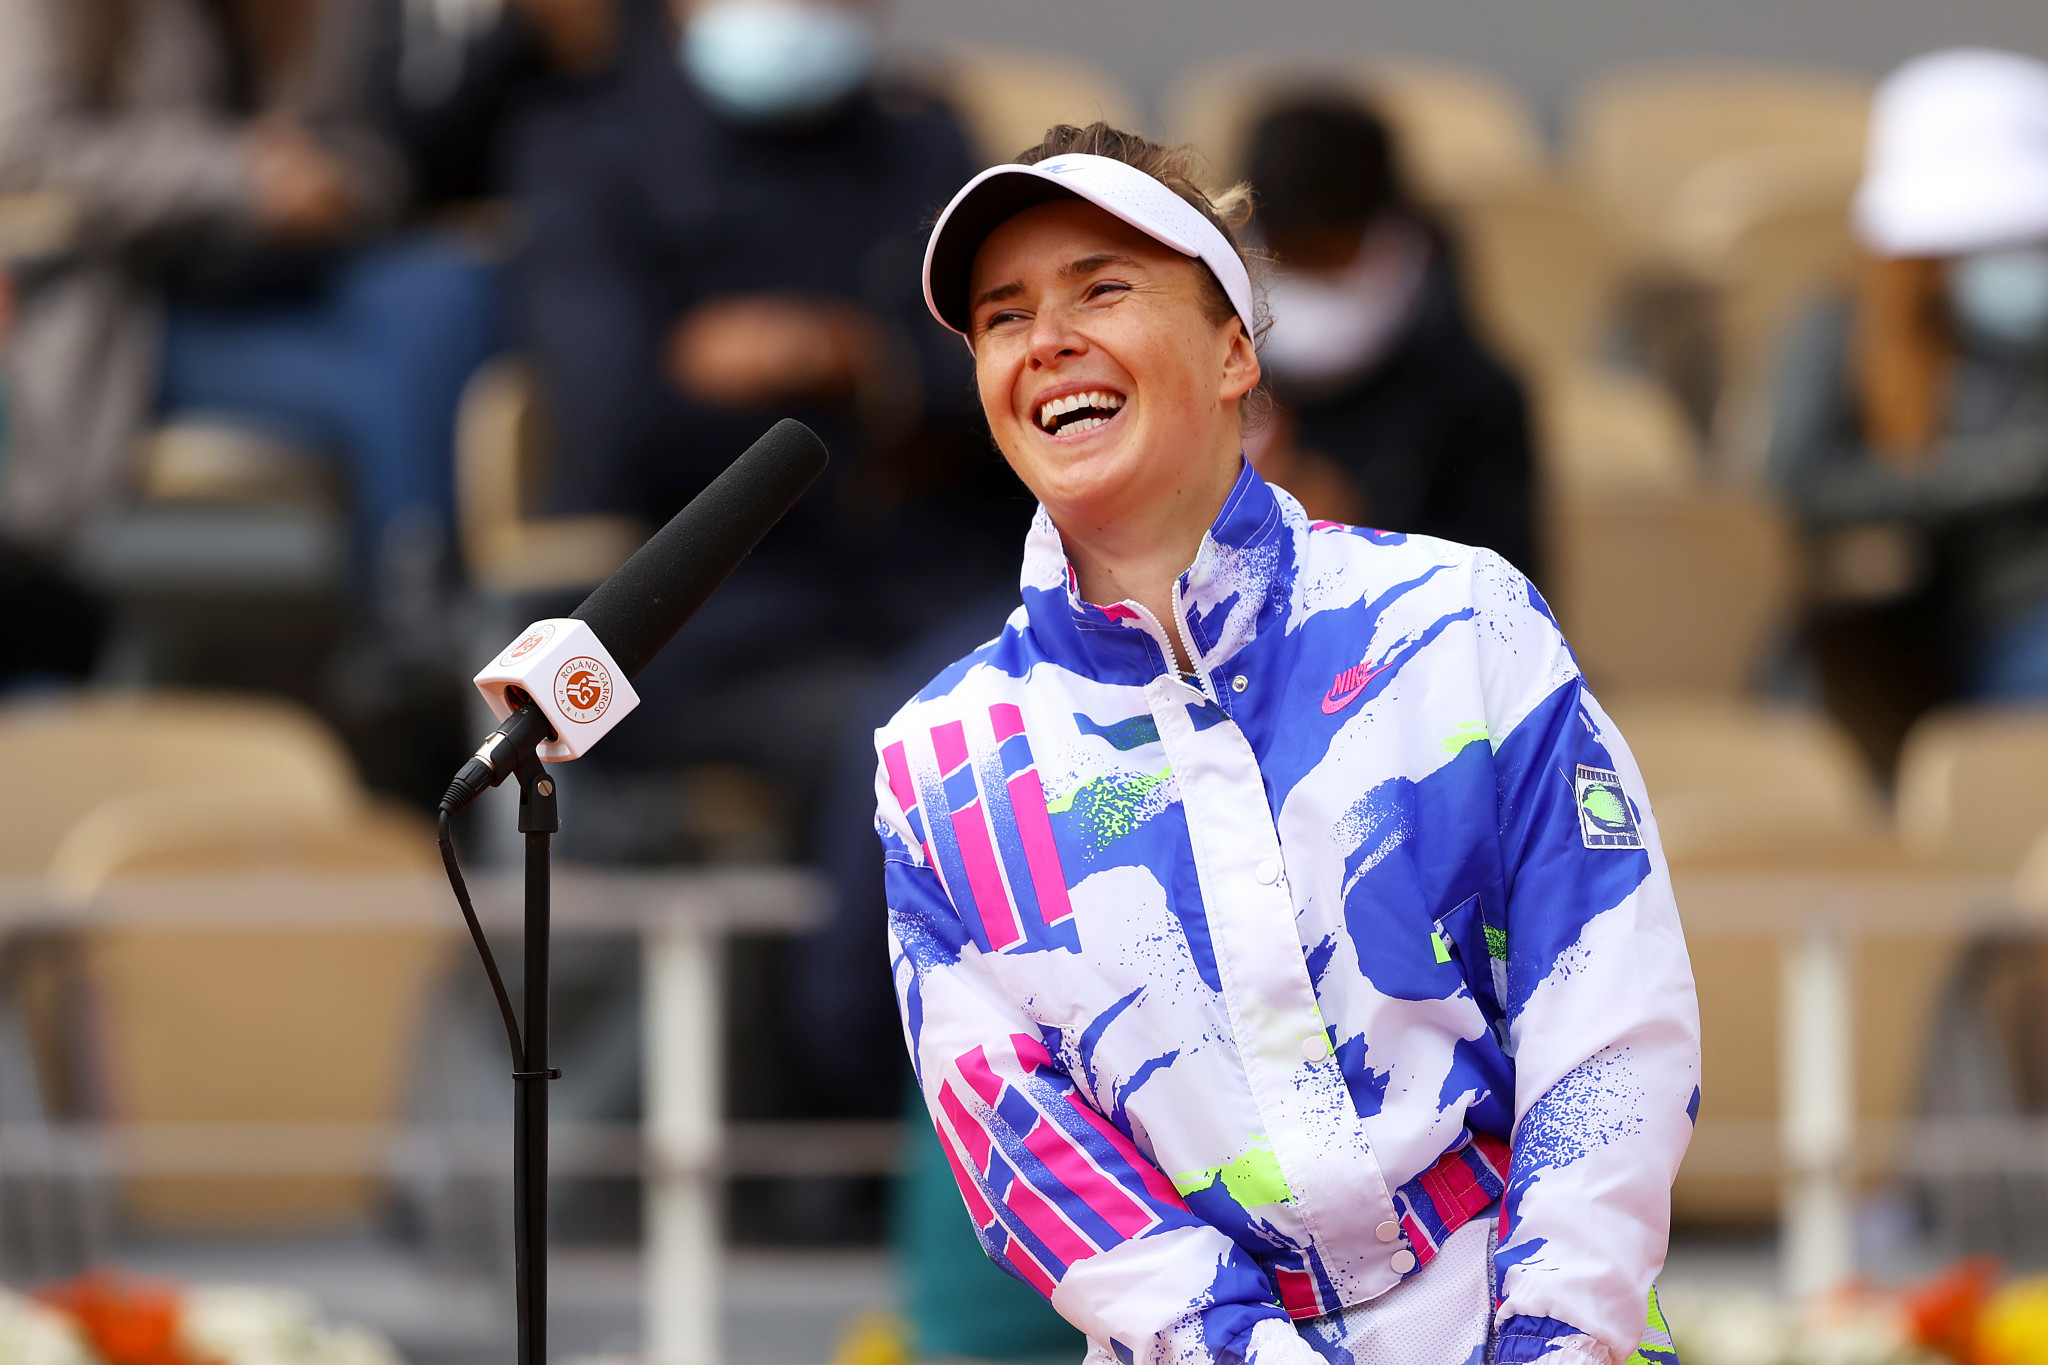 Third seed Elina Svitolina enjoys a giggle during her post-match interview after reaching the quarter-finals ©Getty Images